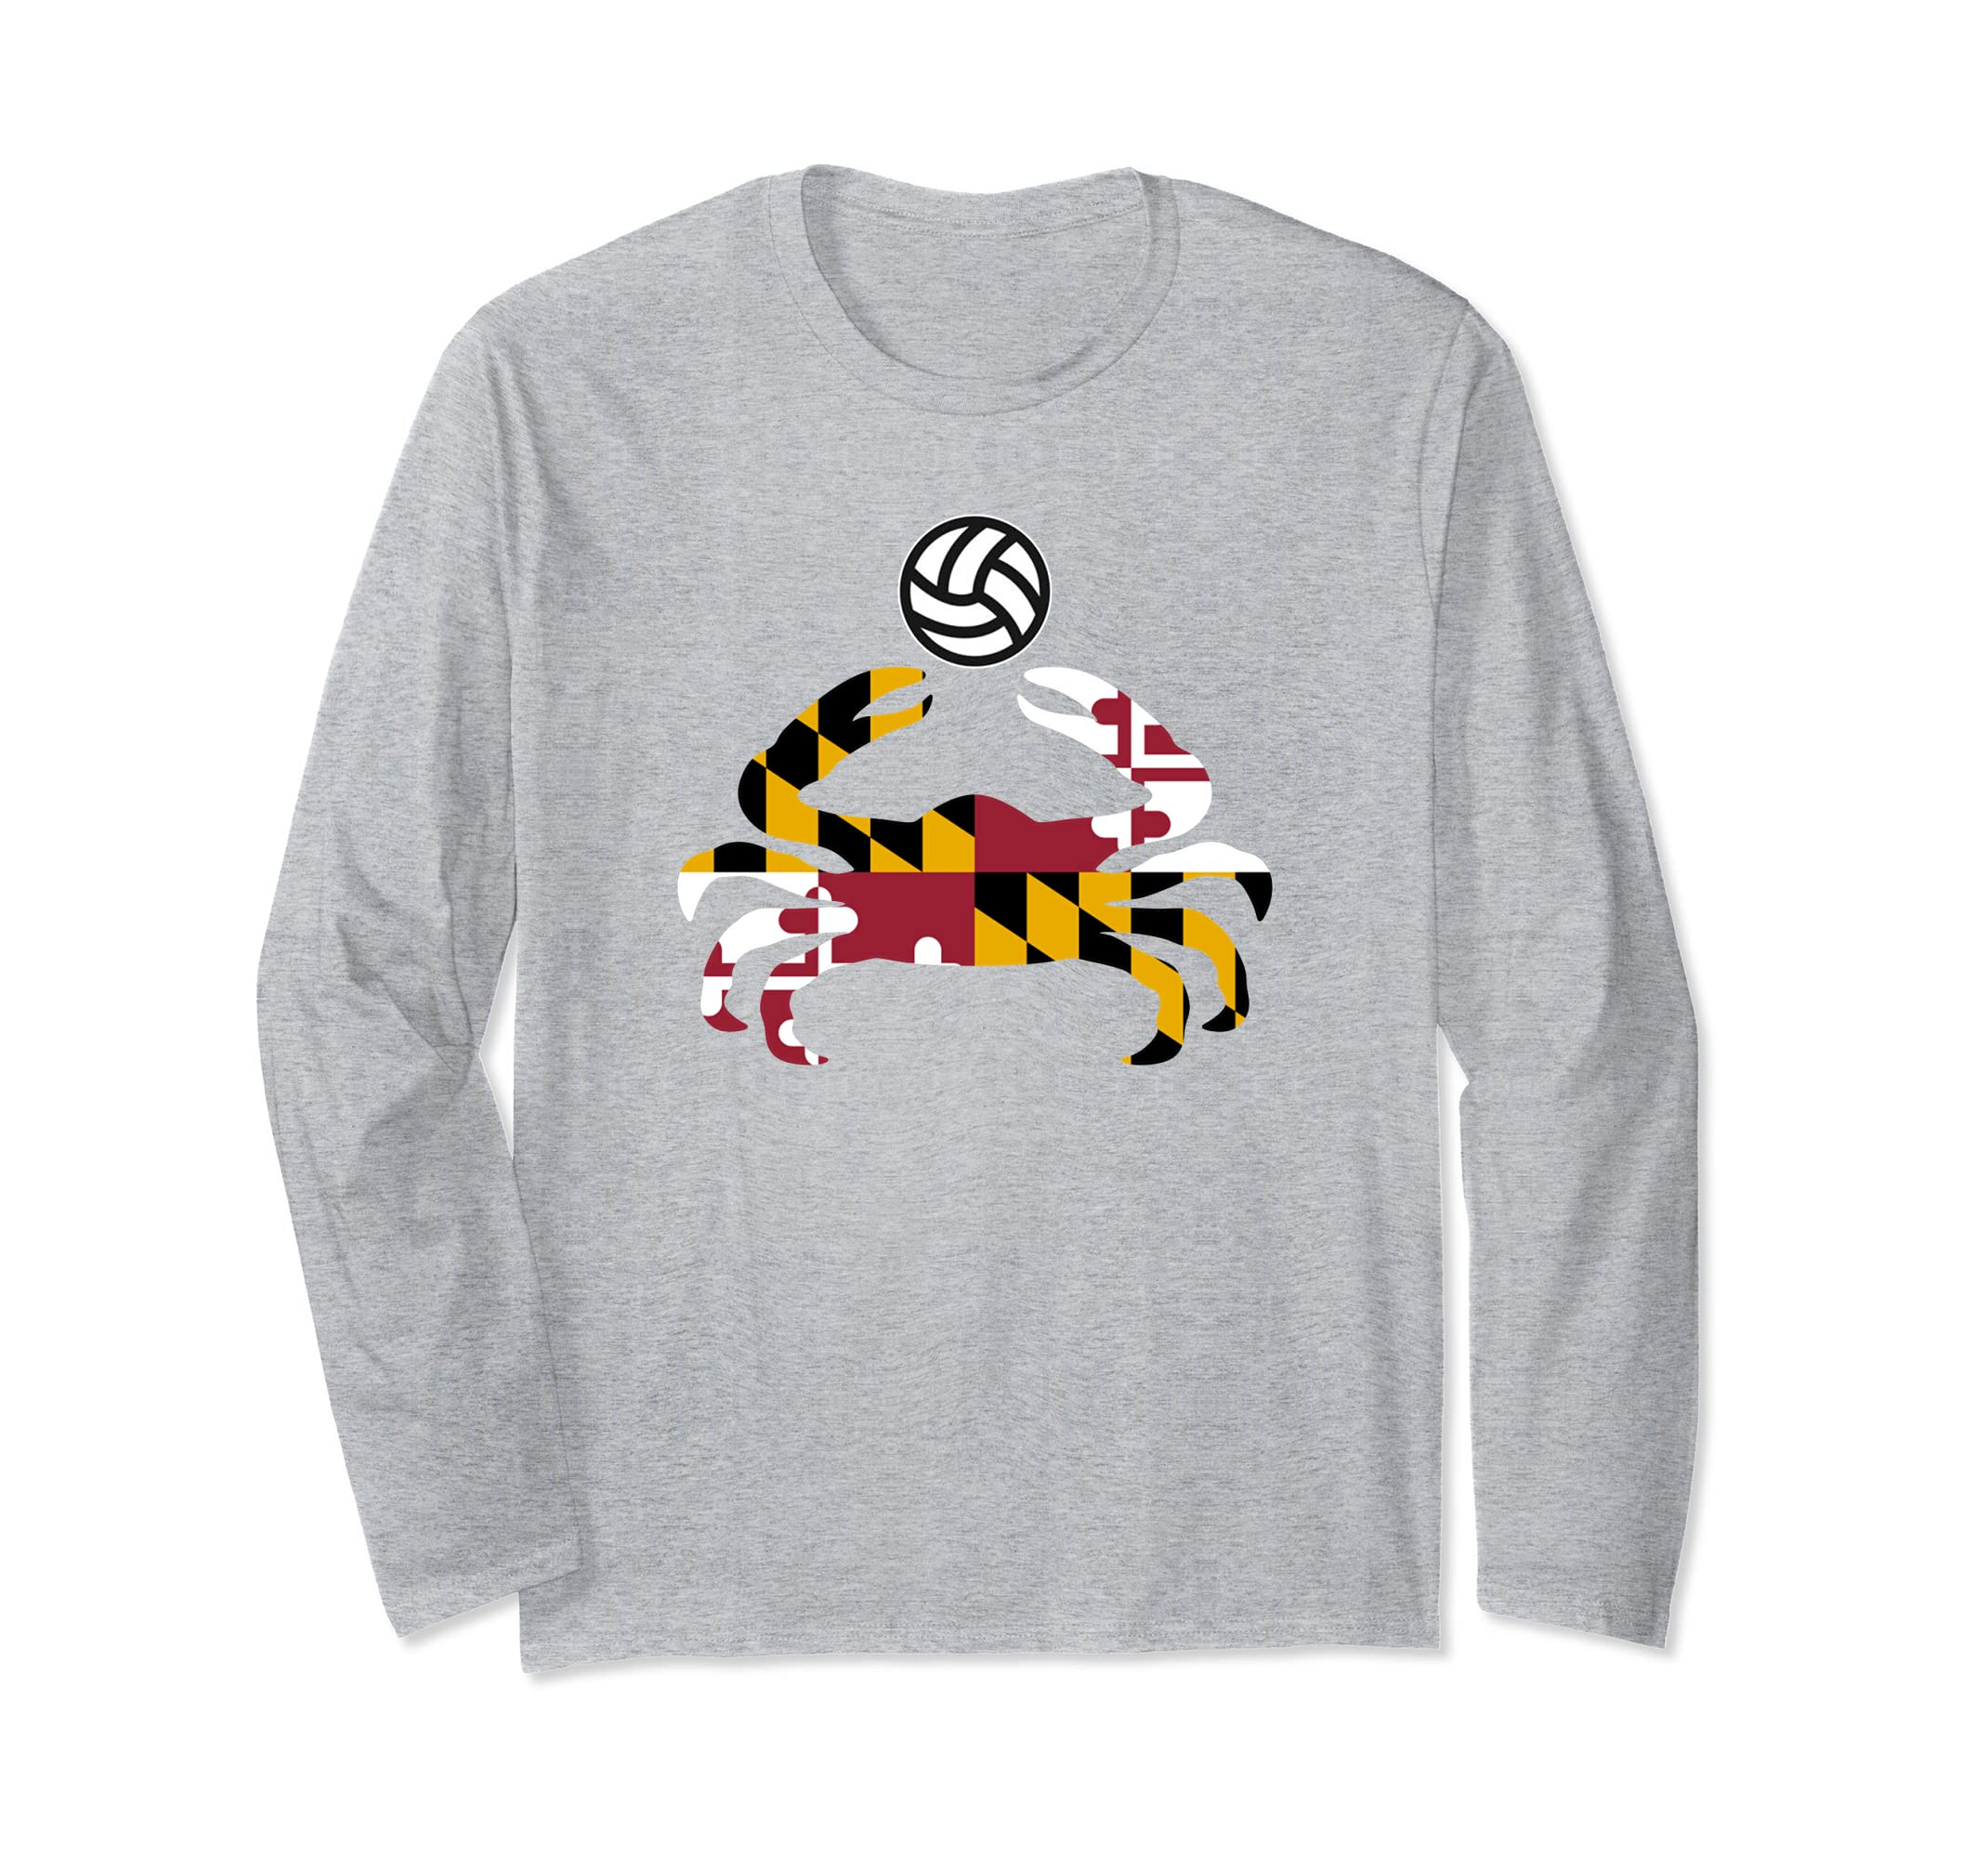 Maryland State Flag Blue Crab Pride T Shirt with volleyball-azvn